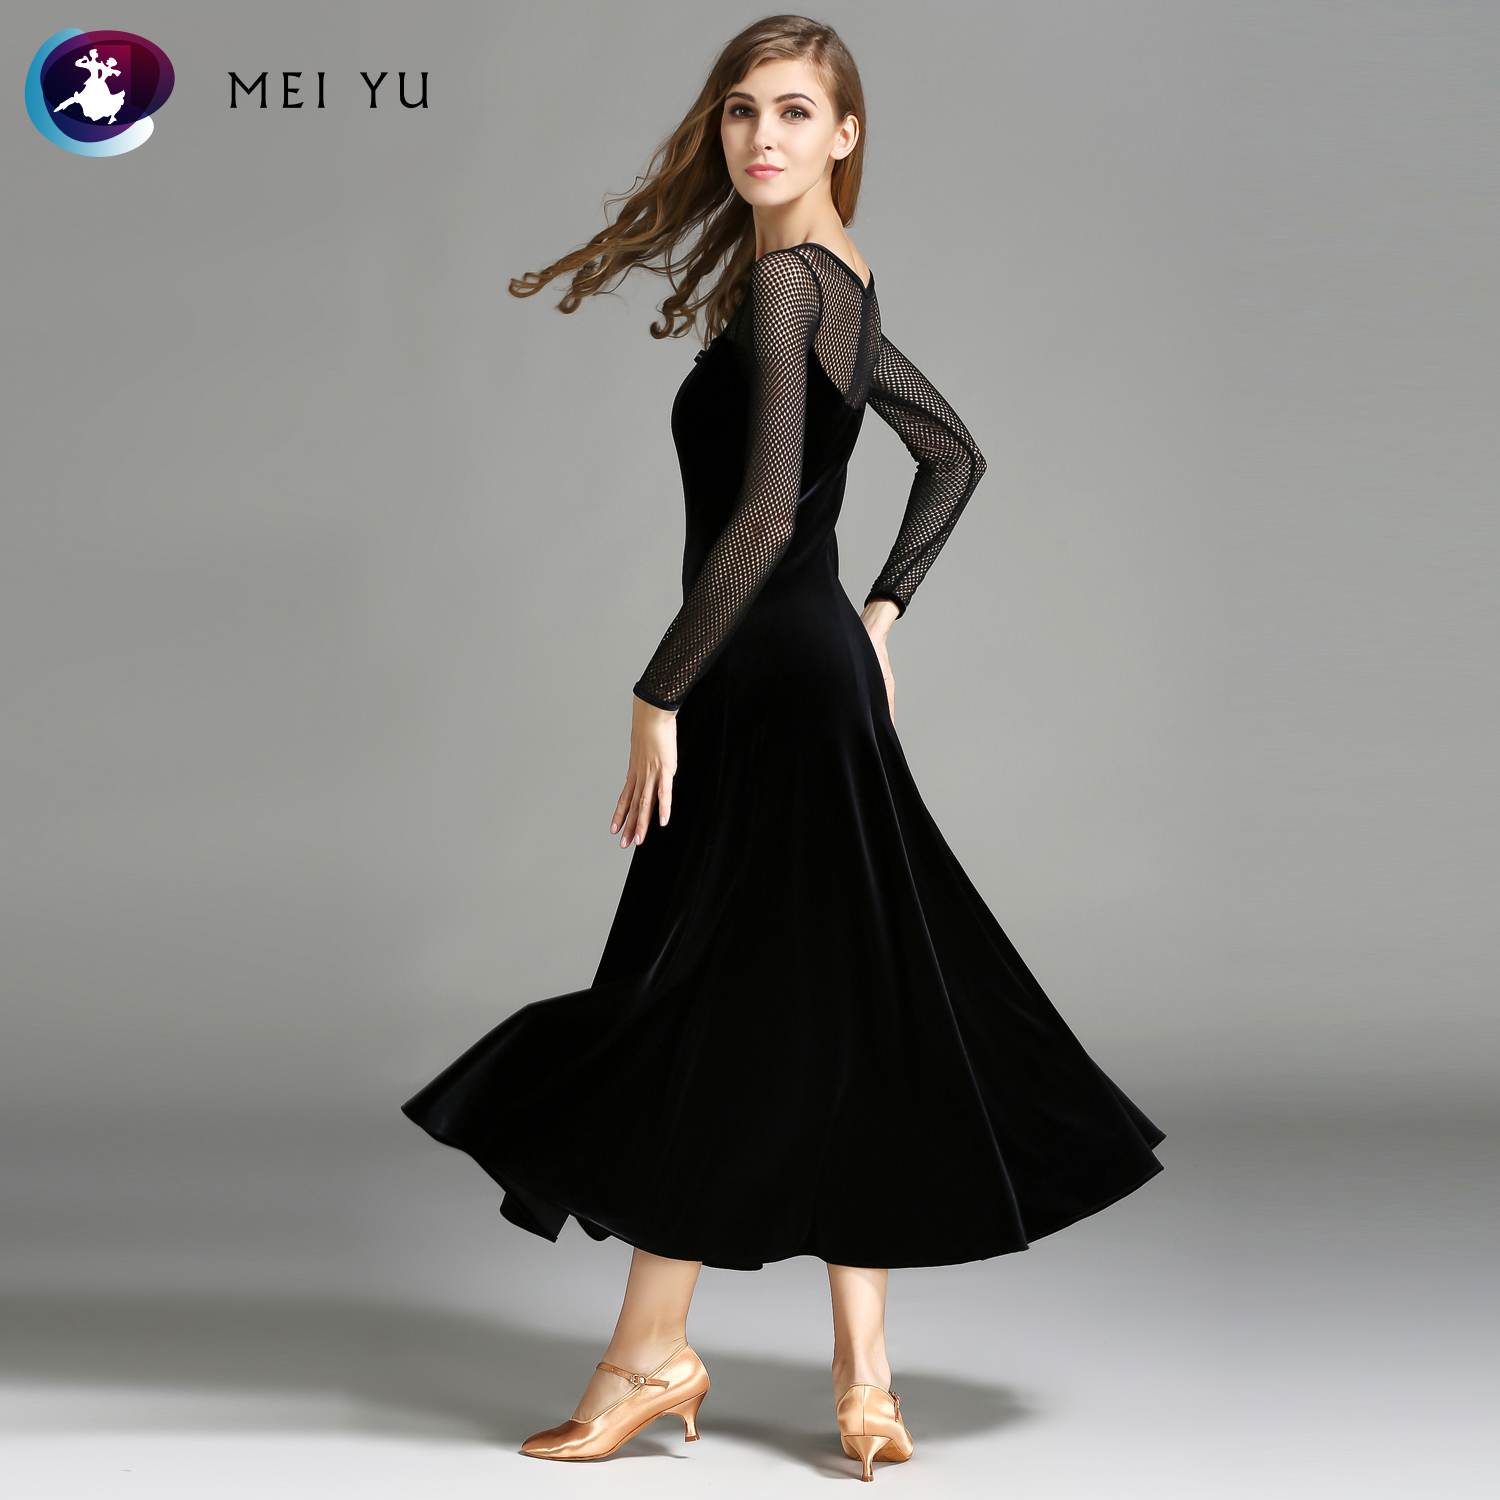 Ballroom Creative Mei Yu My745 Modern Dance Costume Women Lady Adult Waltzing Tango Velvet Dancing Dress Ballroom Costume Evening Party Dress Novelty & Special Use